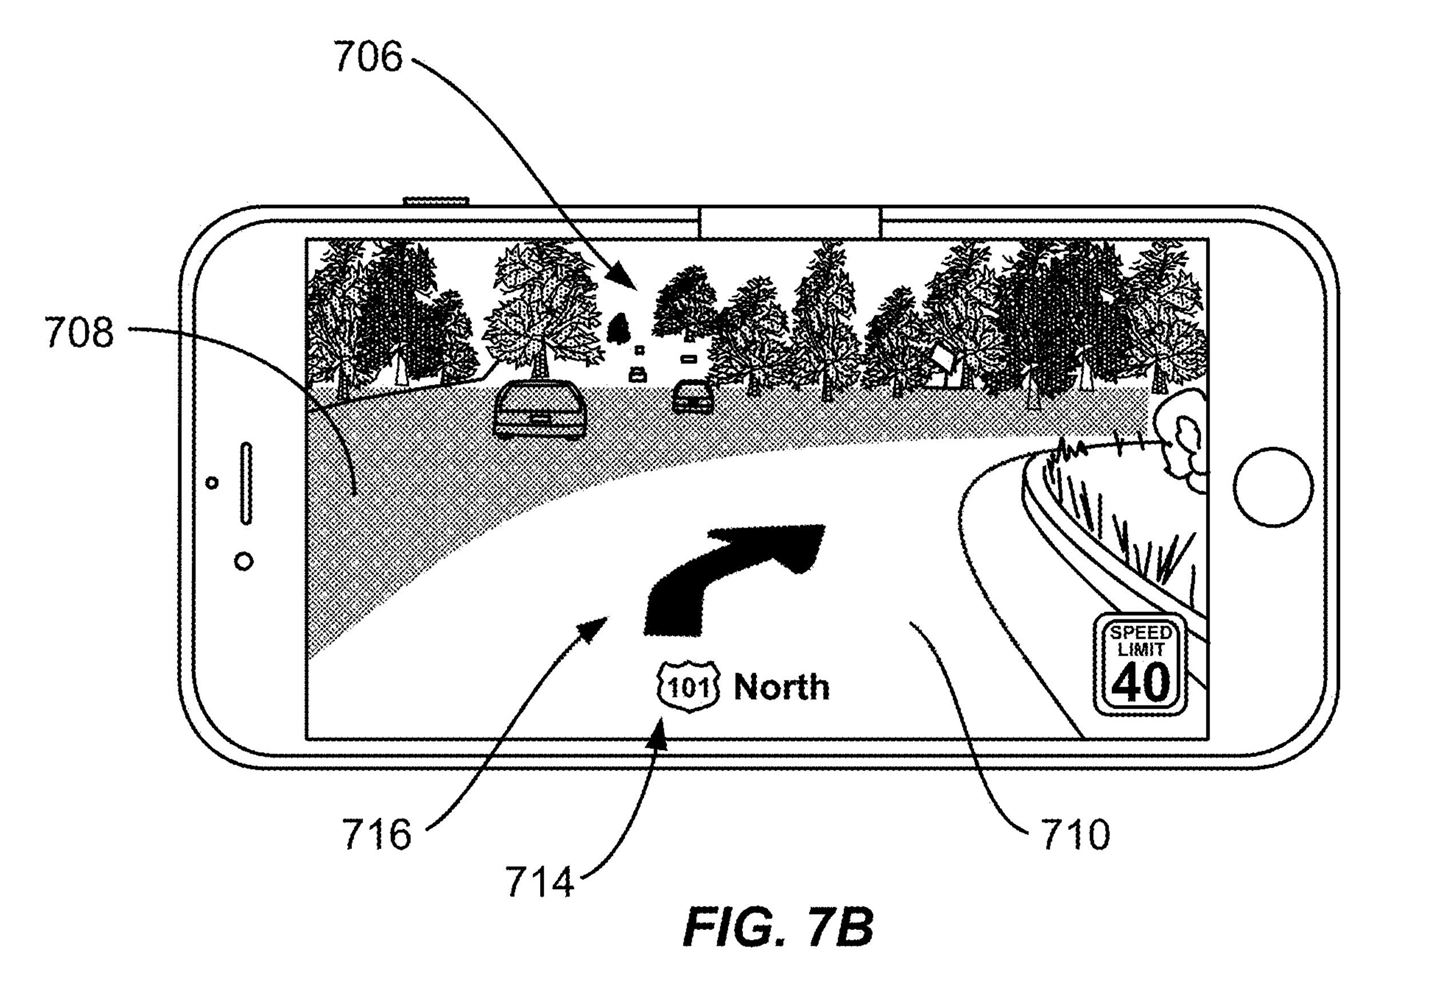 Market Reality: Magic Leap One Tested as Office Companion, Nreal Releases SDK, & Apple Files for AR Navigation Patent